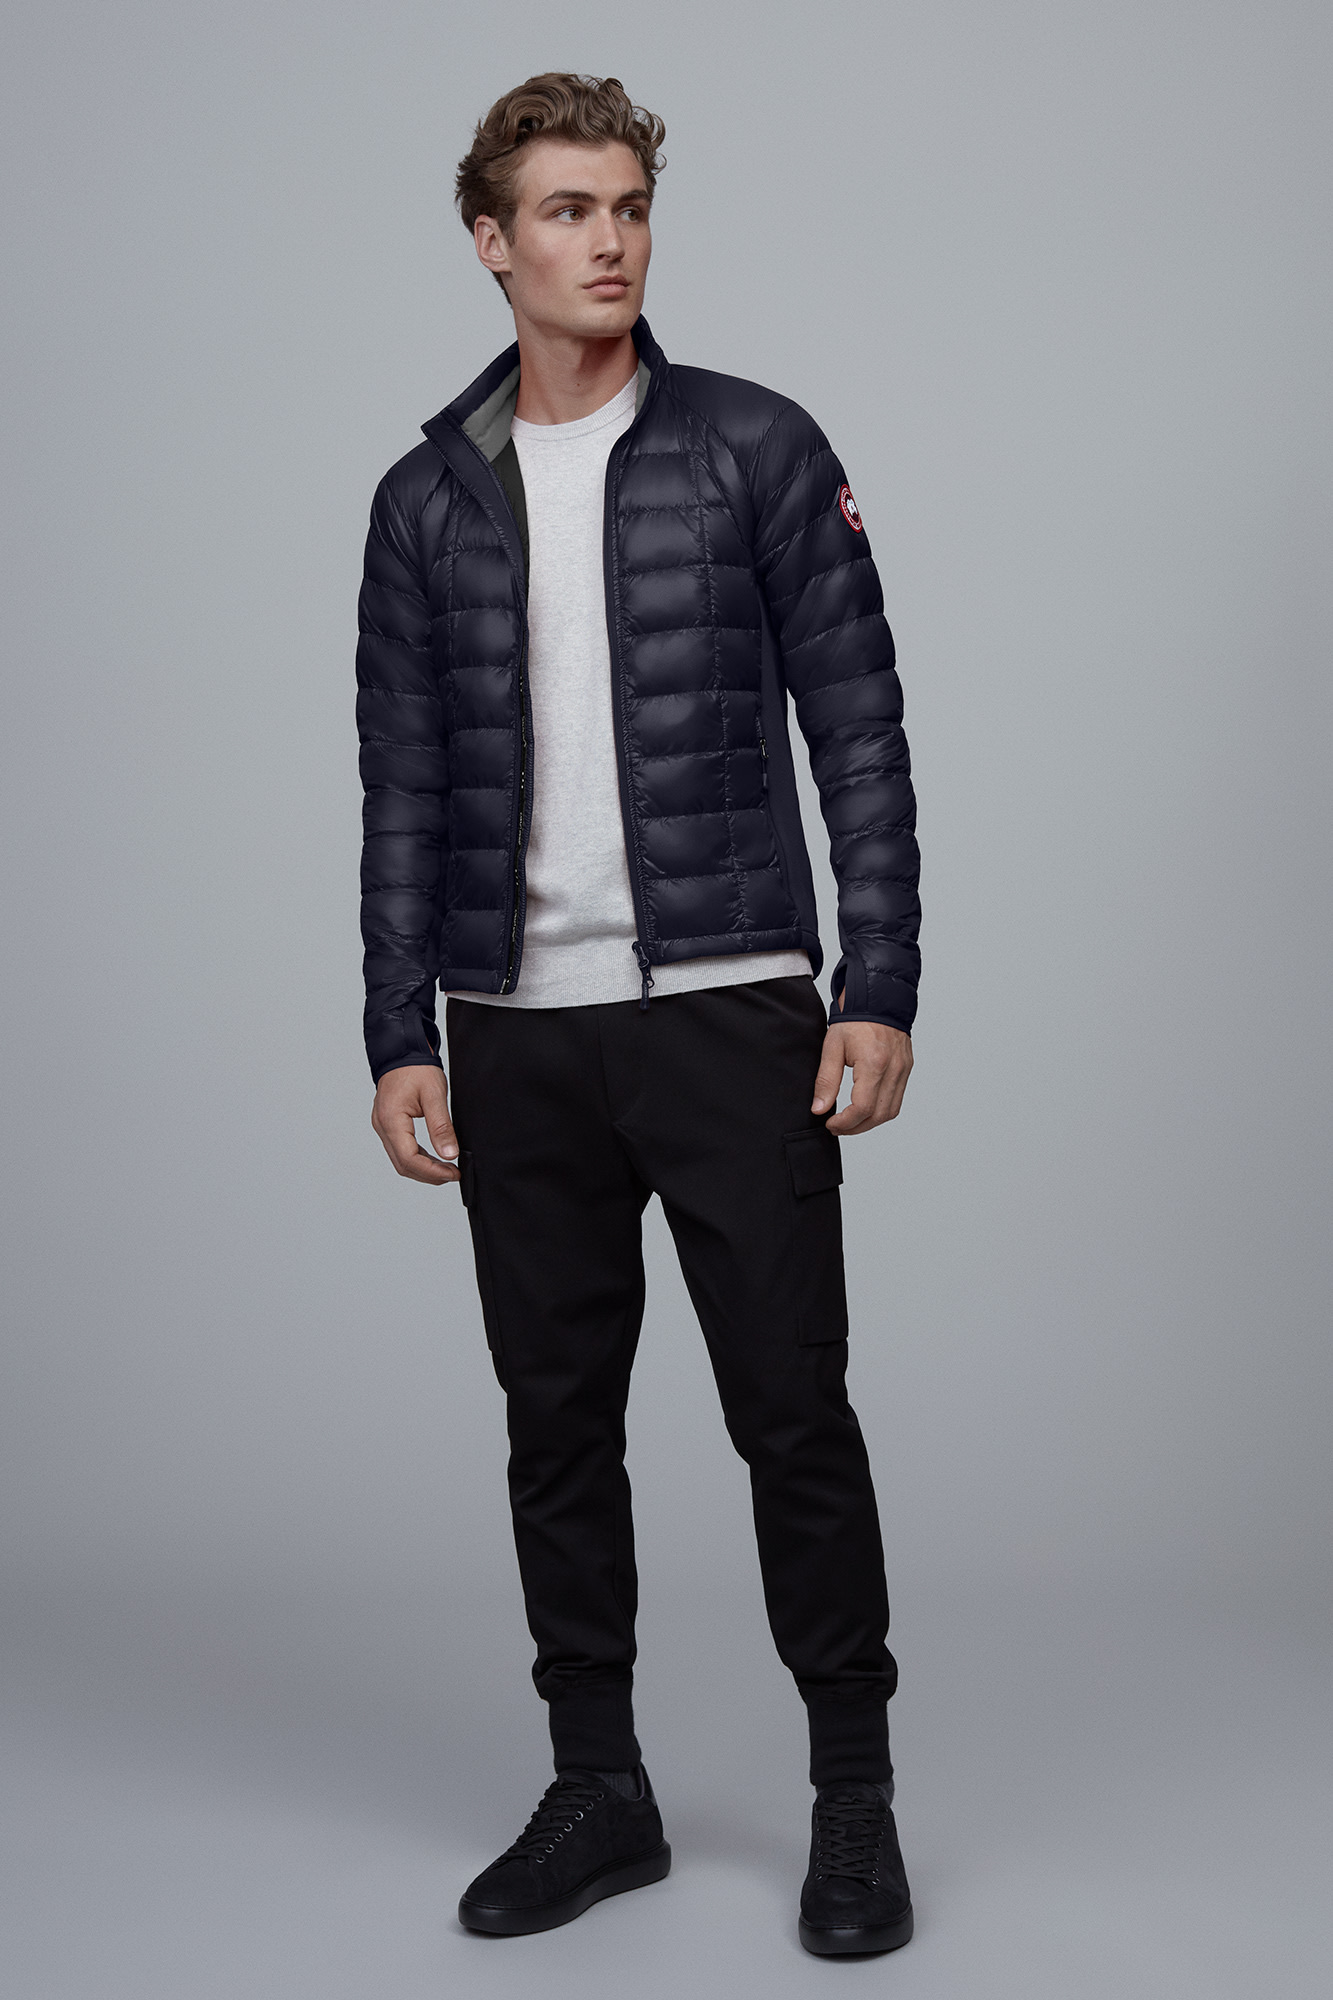 HyBridge Lite Jacket | Men | Canada Goose® - photo#4